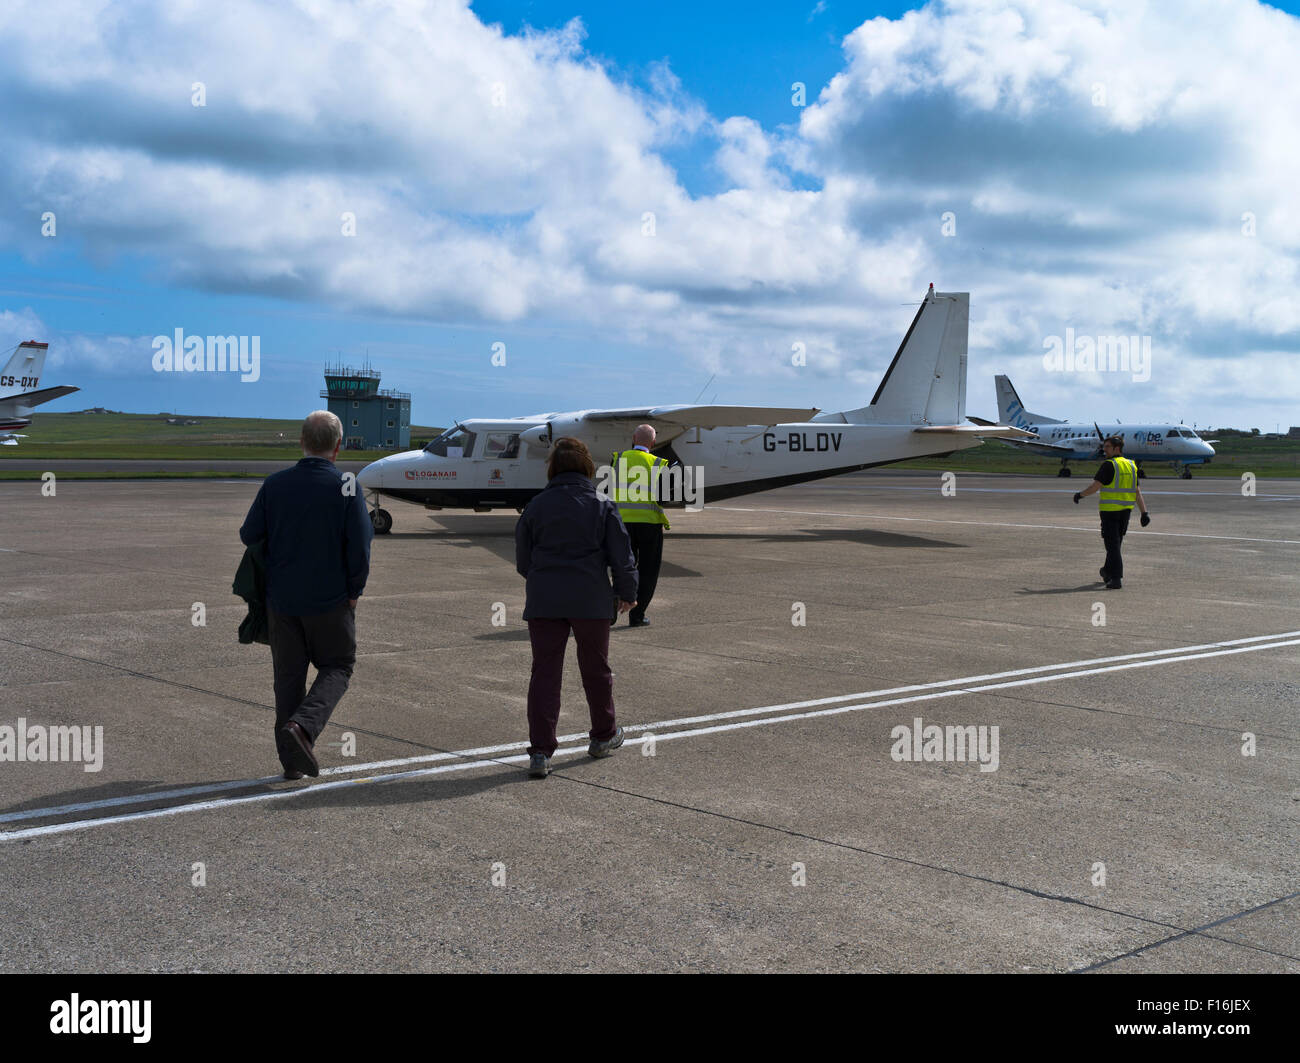 dh Kirkwall airport KIRKWALL ORKNEY Passenagers boarding